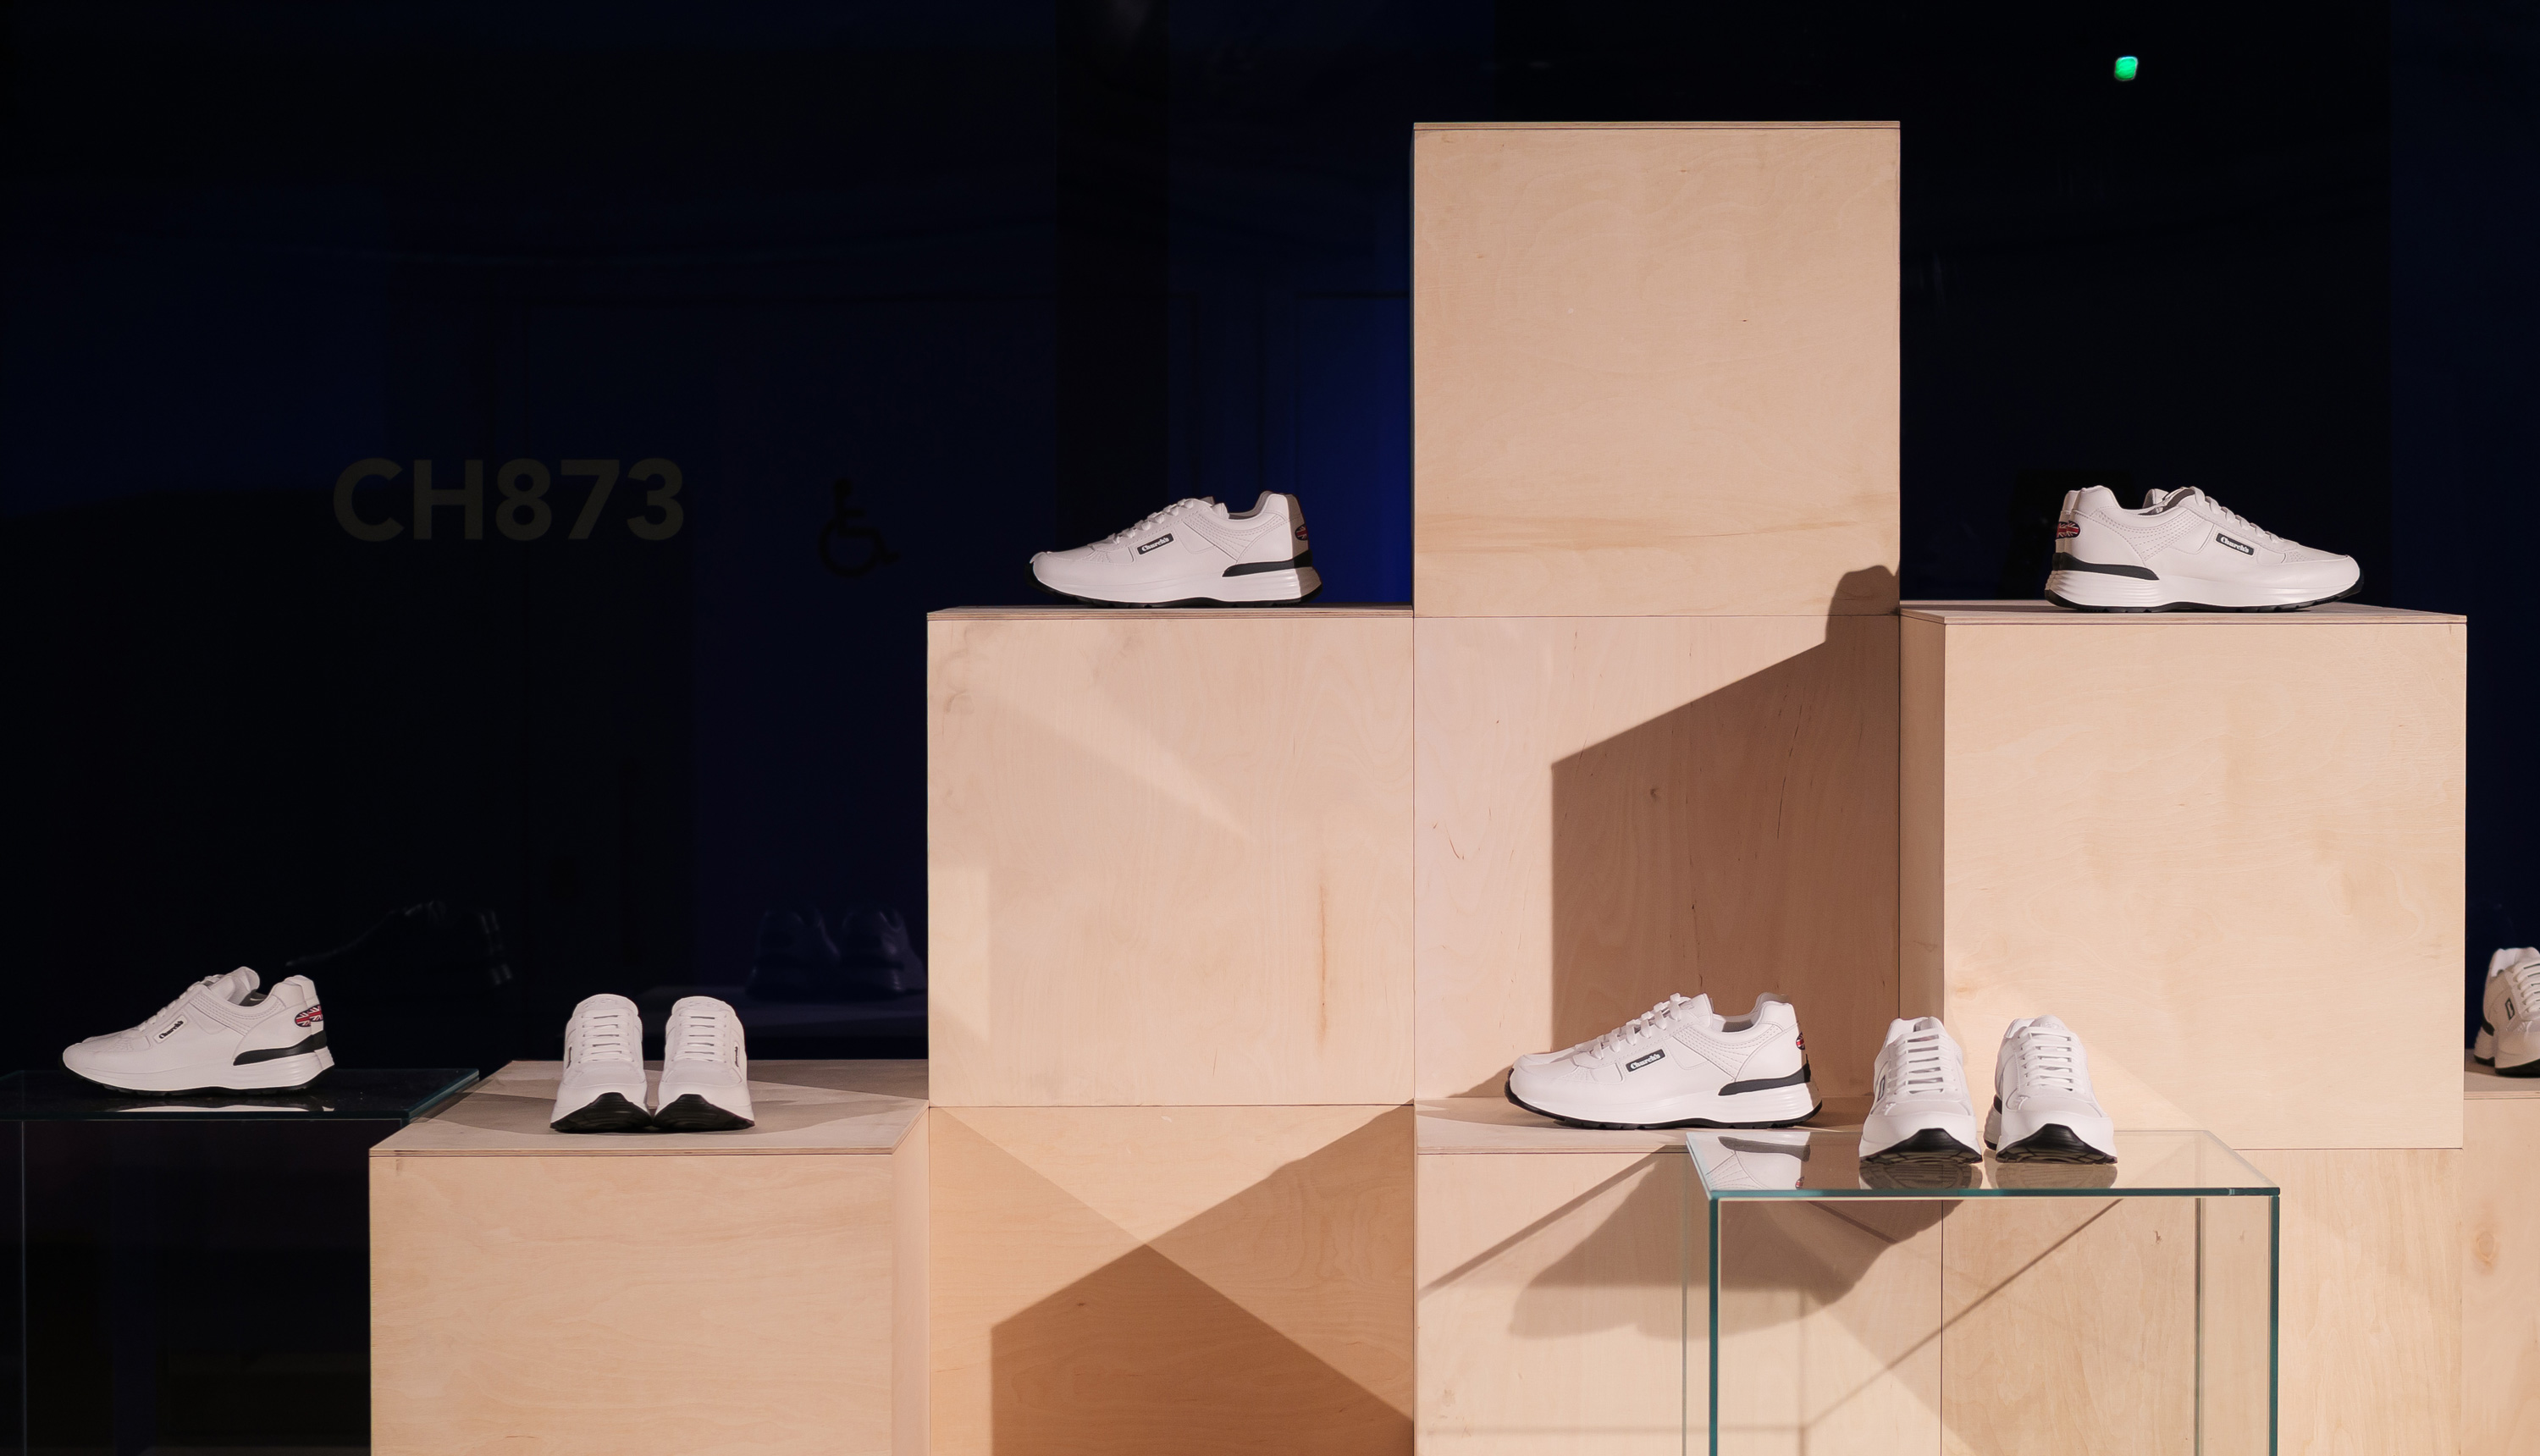 Display of shoes that are nicely placed on wooden boxes